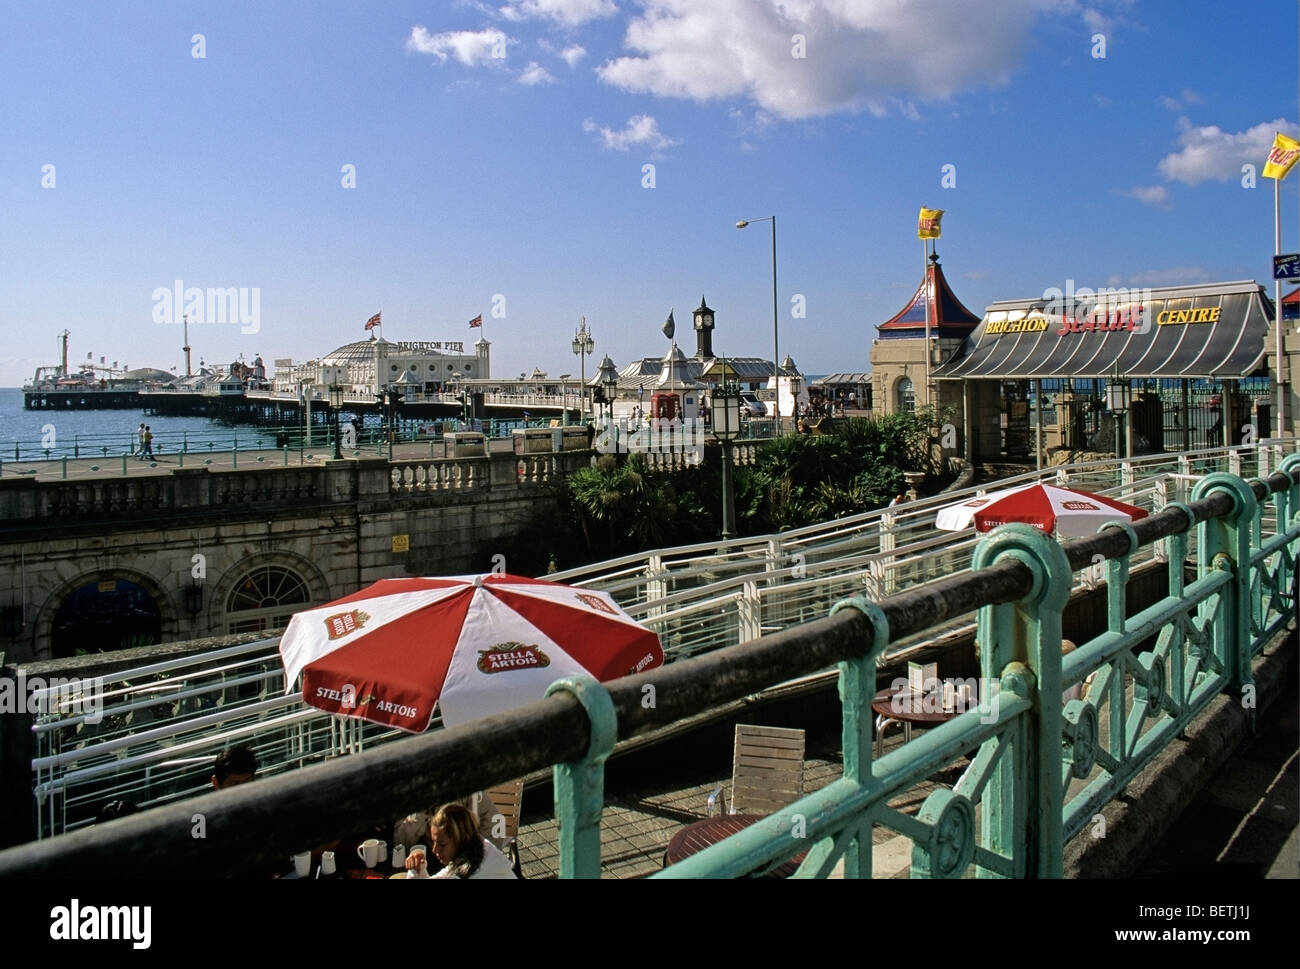 Café by the entrance to the Brighton Sea Life centre towards the Palace Pier and promenade - Stock Image